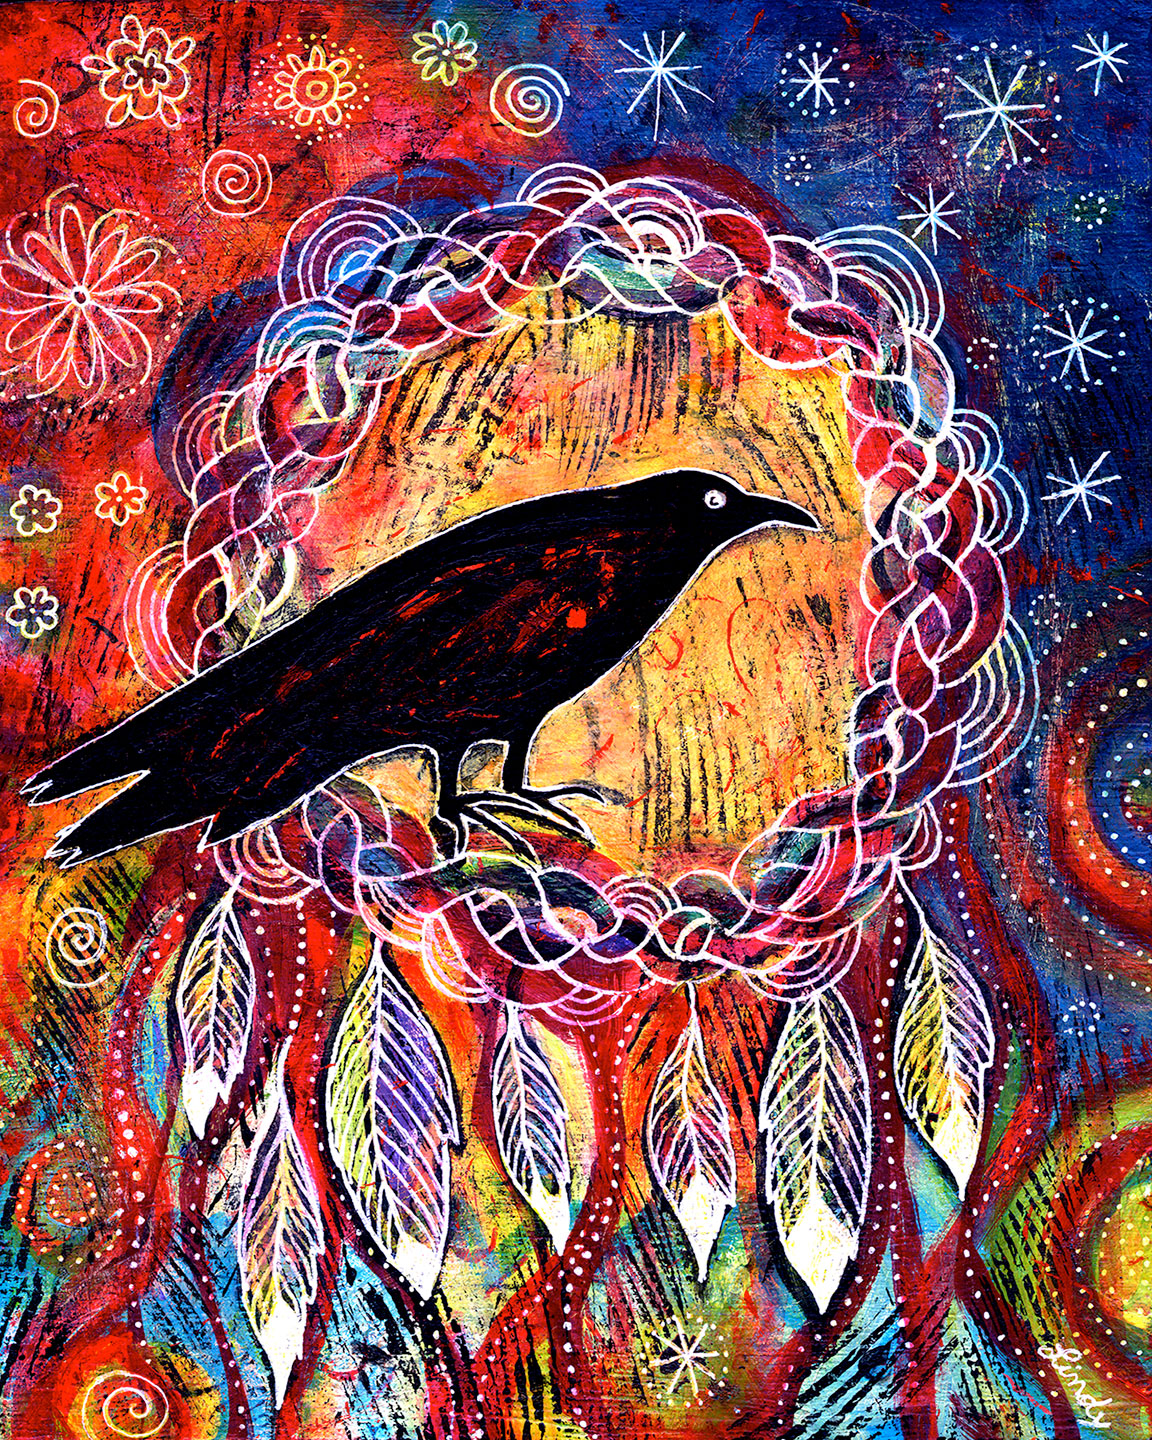 colorful raven painting by Lindy GaskillRaven